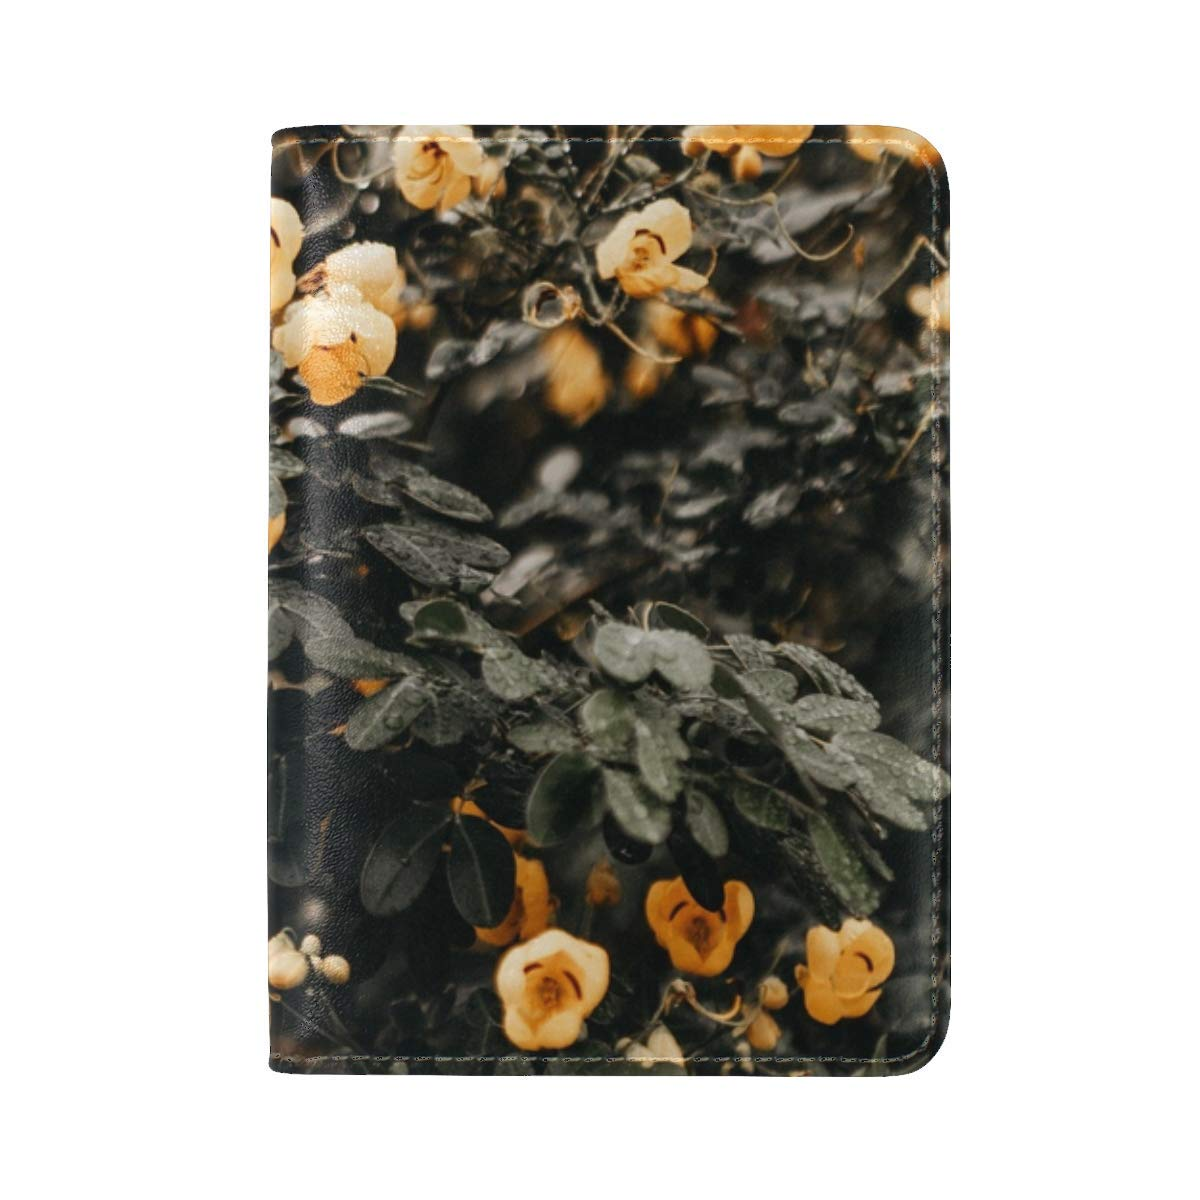 Flowers Yellow Bush Leather Passport Holder Cover Case Travel One Pocket